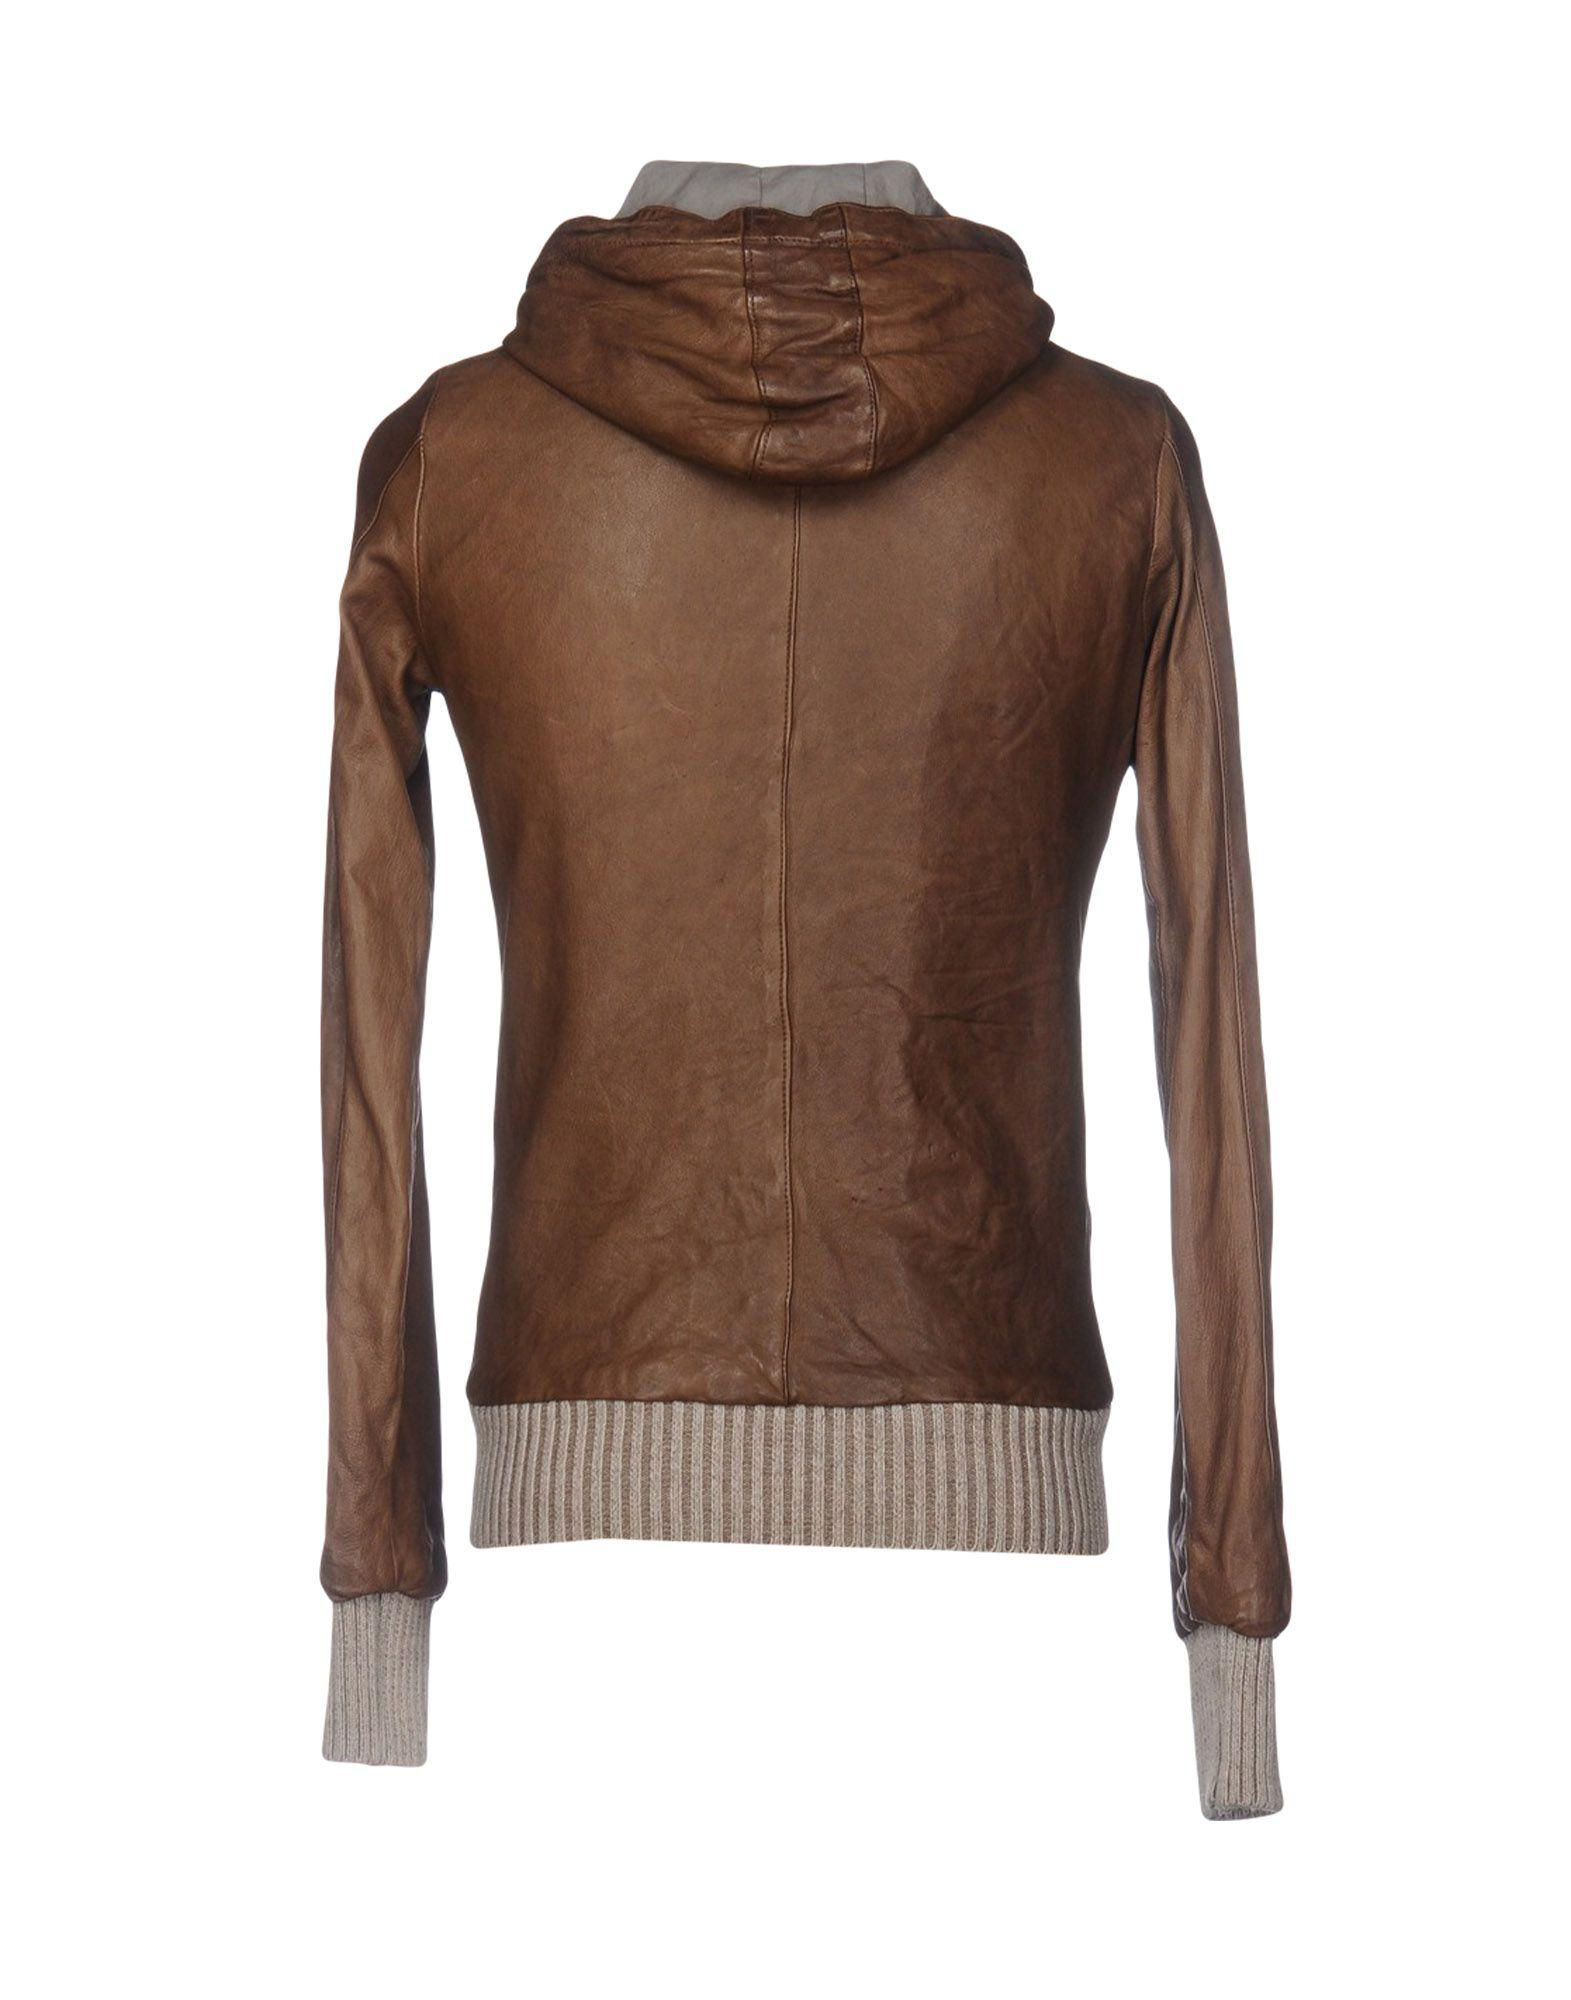 Giorgio Brato Leather Jacket in Khaki (Brown) for Men